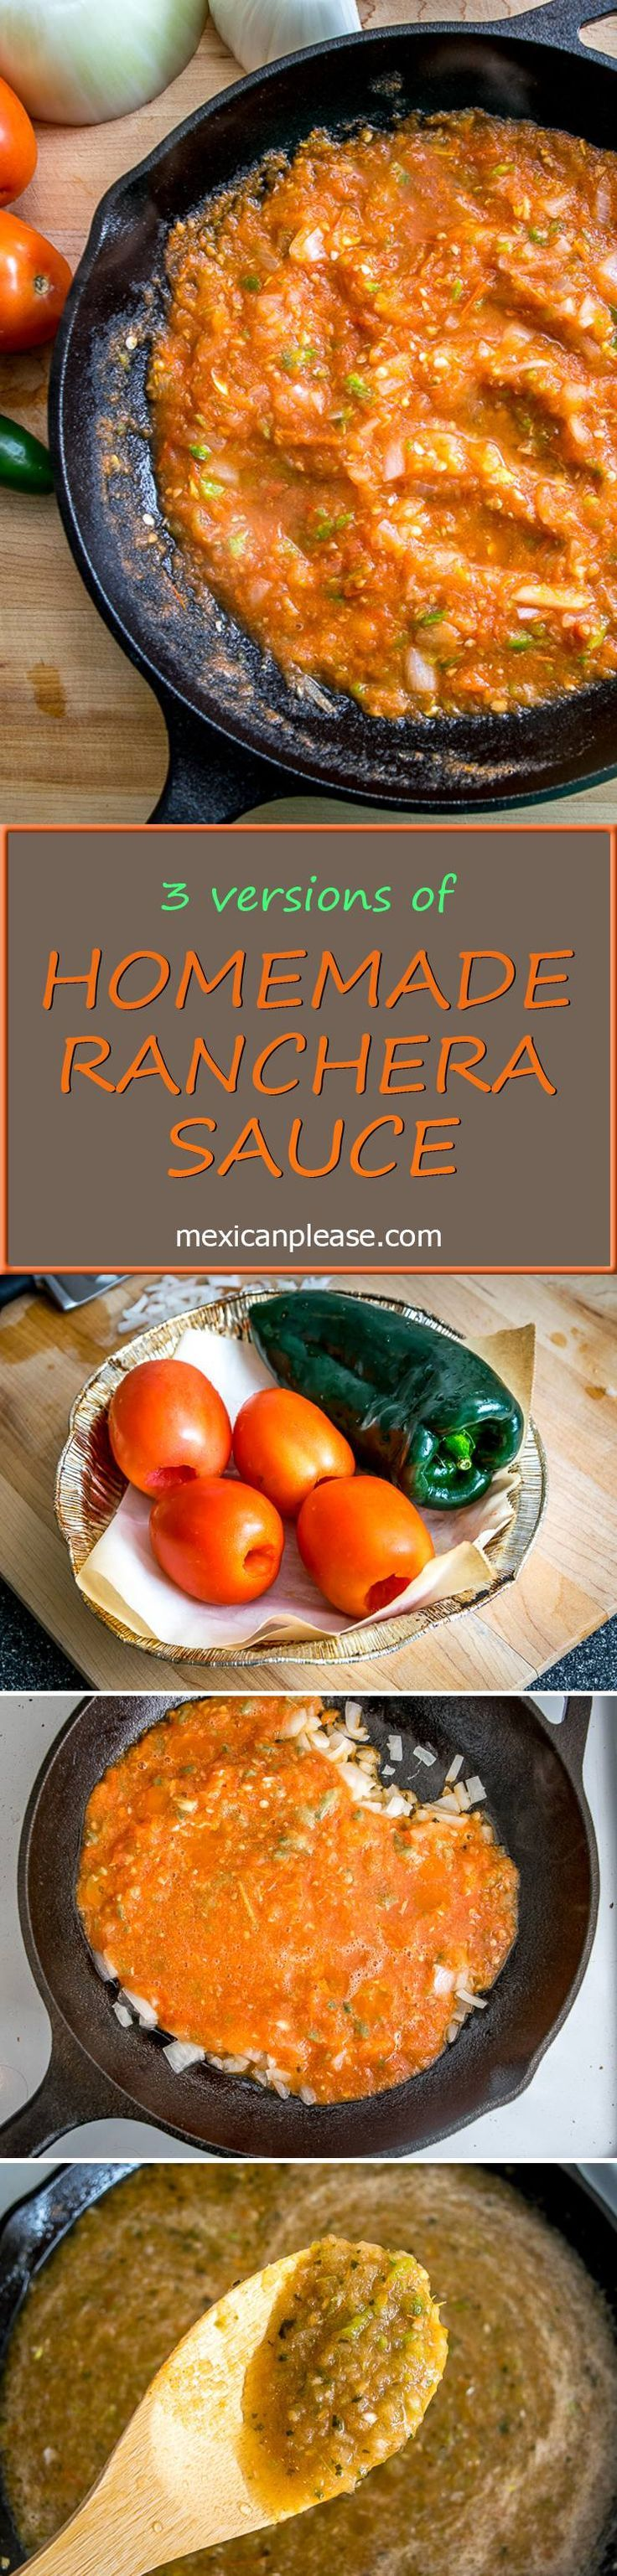 Everyone has their own sweet spot when it comes to Ranchera Sauce, what's yours?  These three variations are the ones you'll find most often on dining tables around Mexico.  http://mexicanplease.com